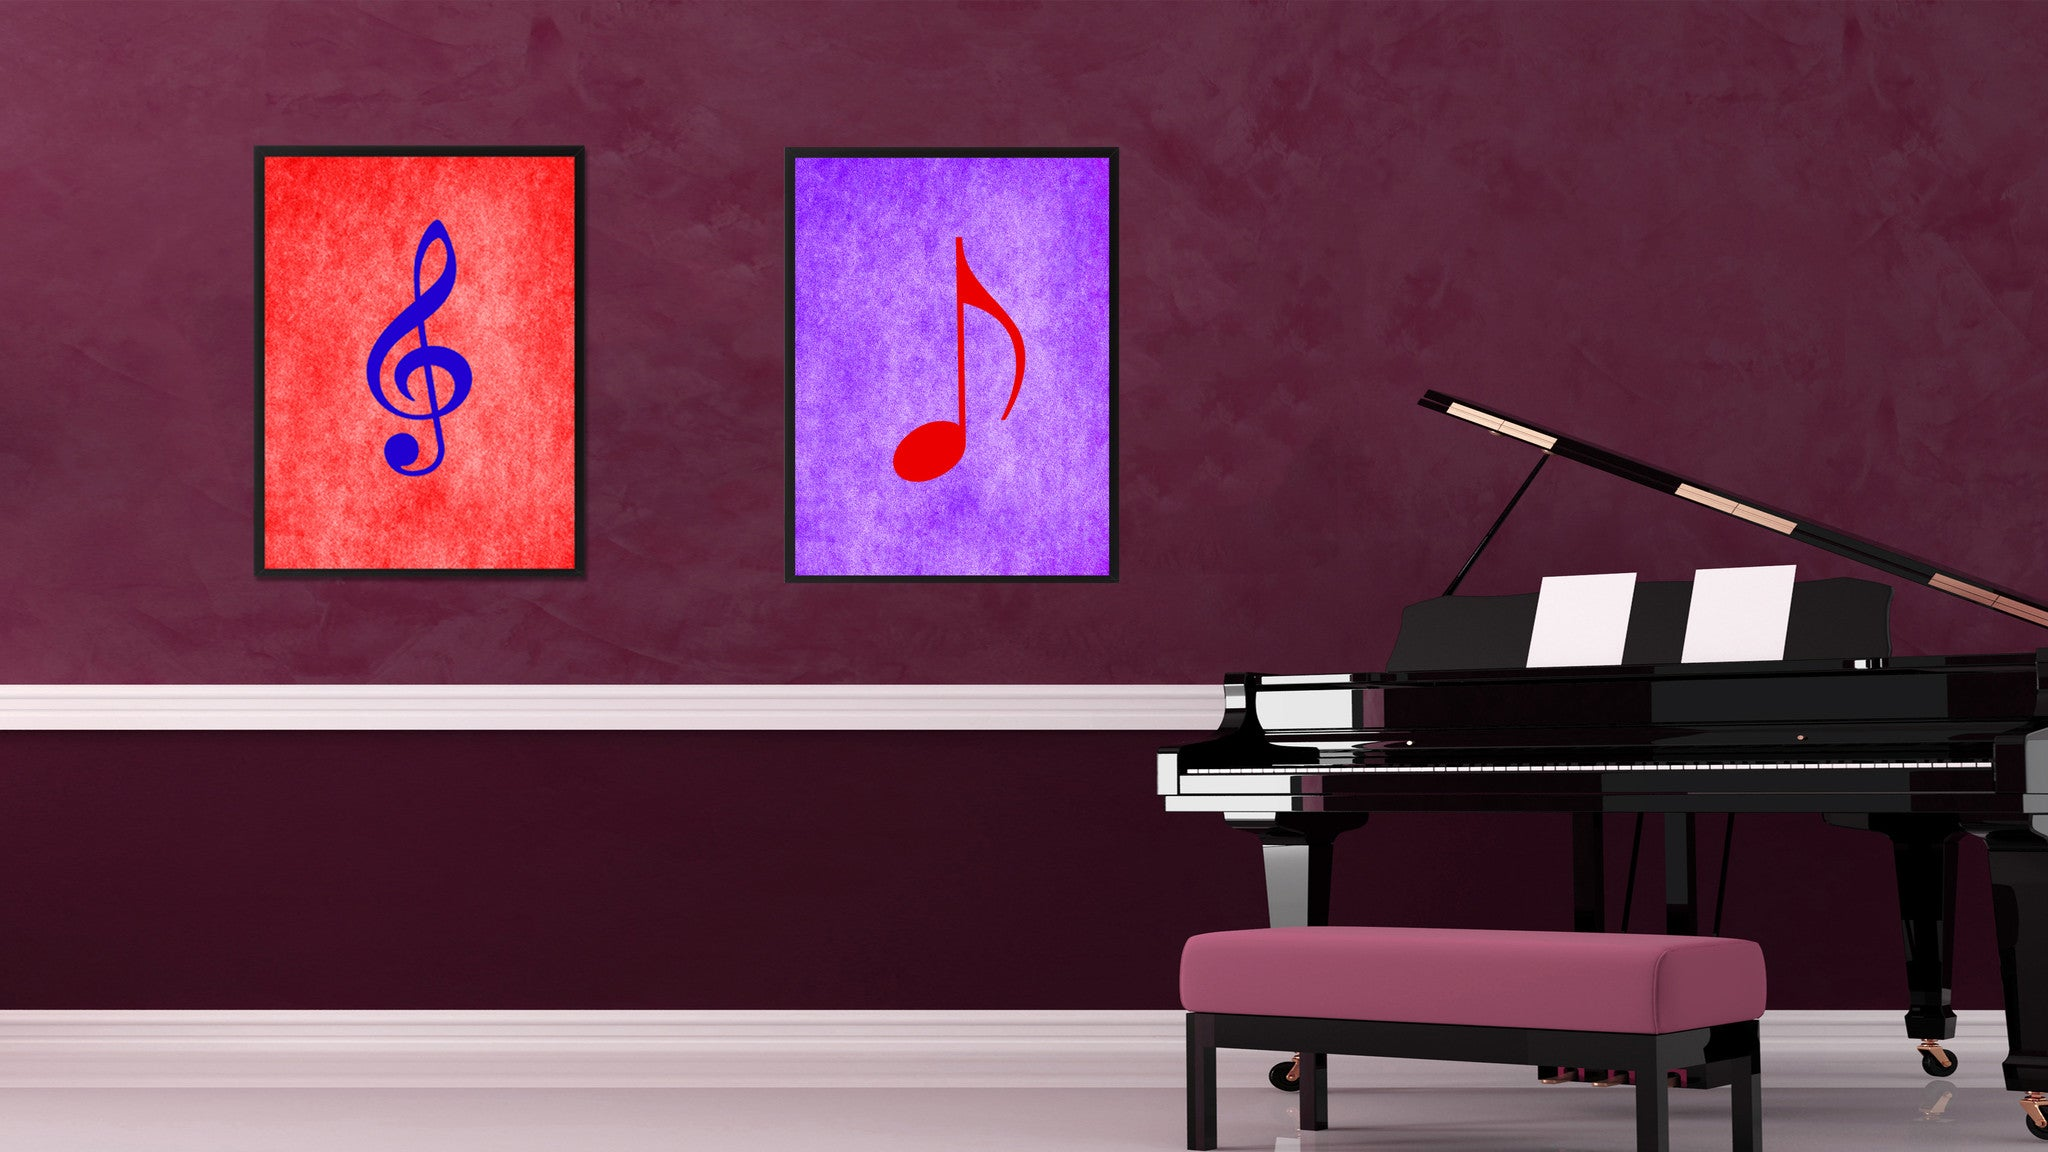 Quaver Music Purple Canvas Print Pictures Frames Office Home Décor Wall Art Gifts